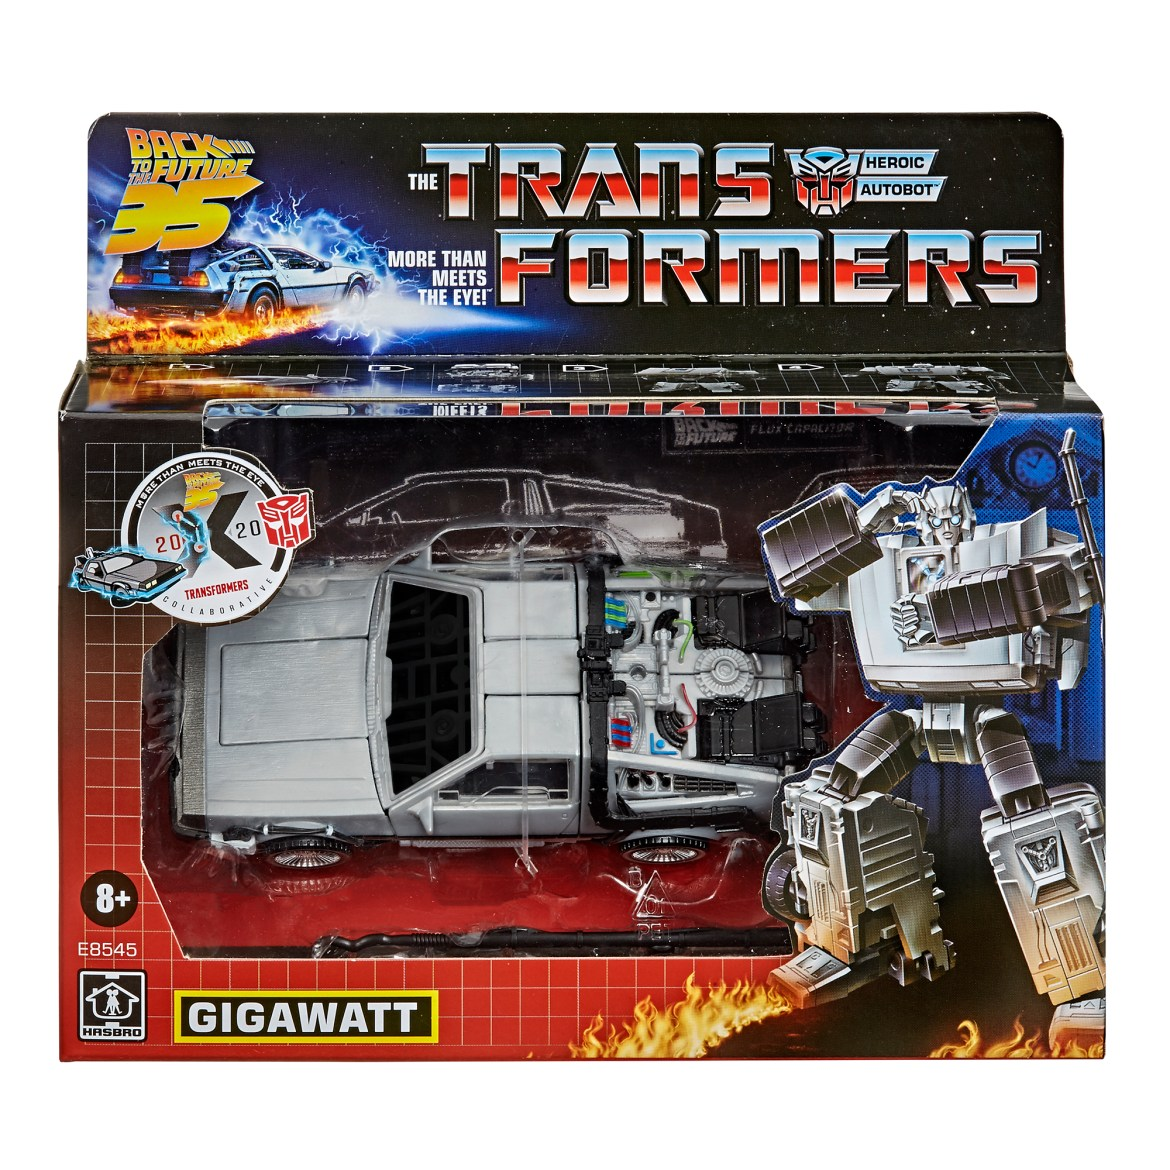 Transformers Generations – Transformers Collaborative: Back to the Future Mash-Up, Gigawatt Available for Pre-Order